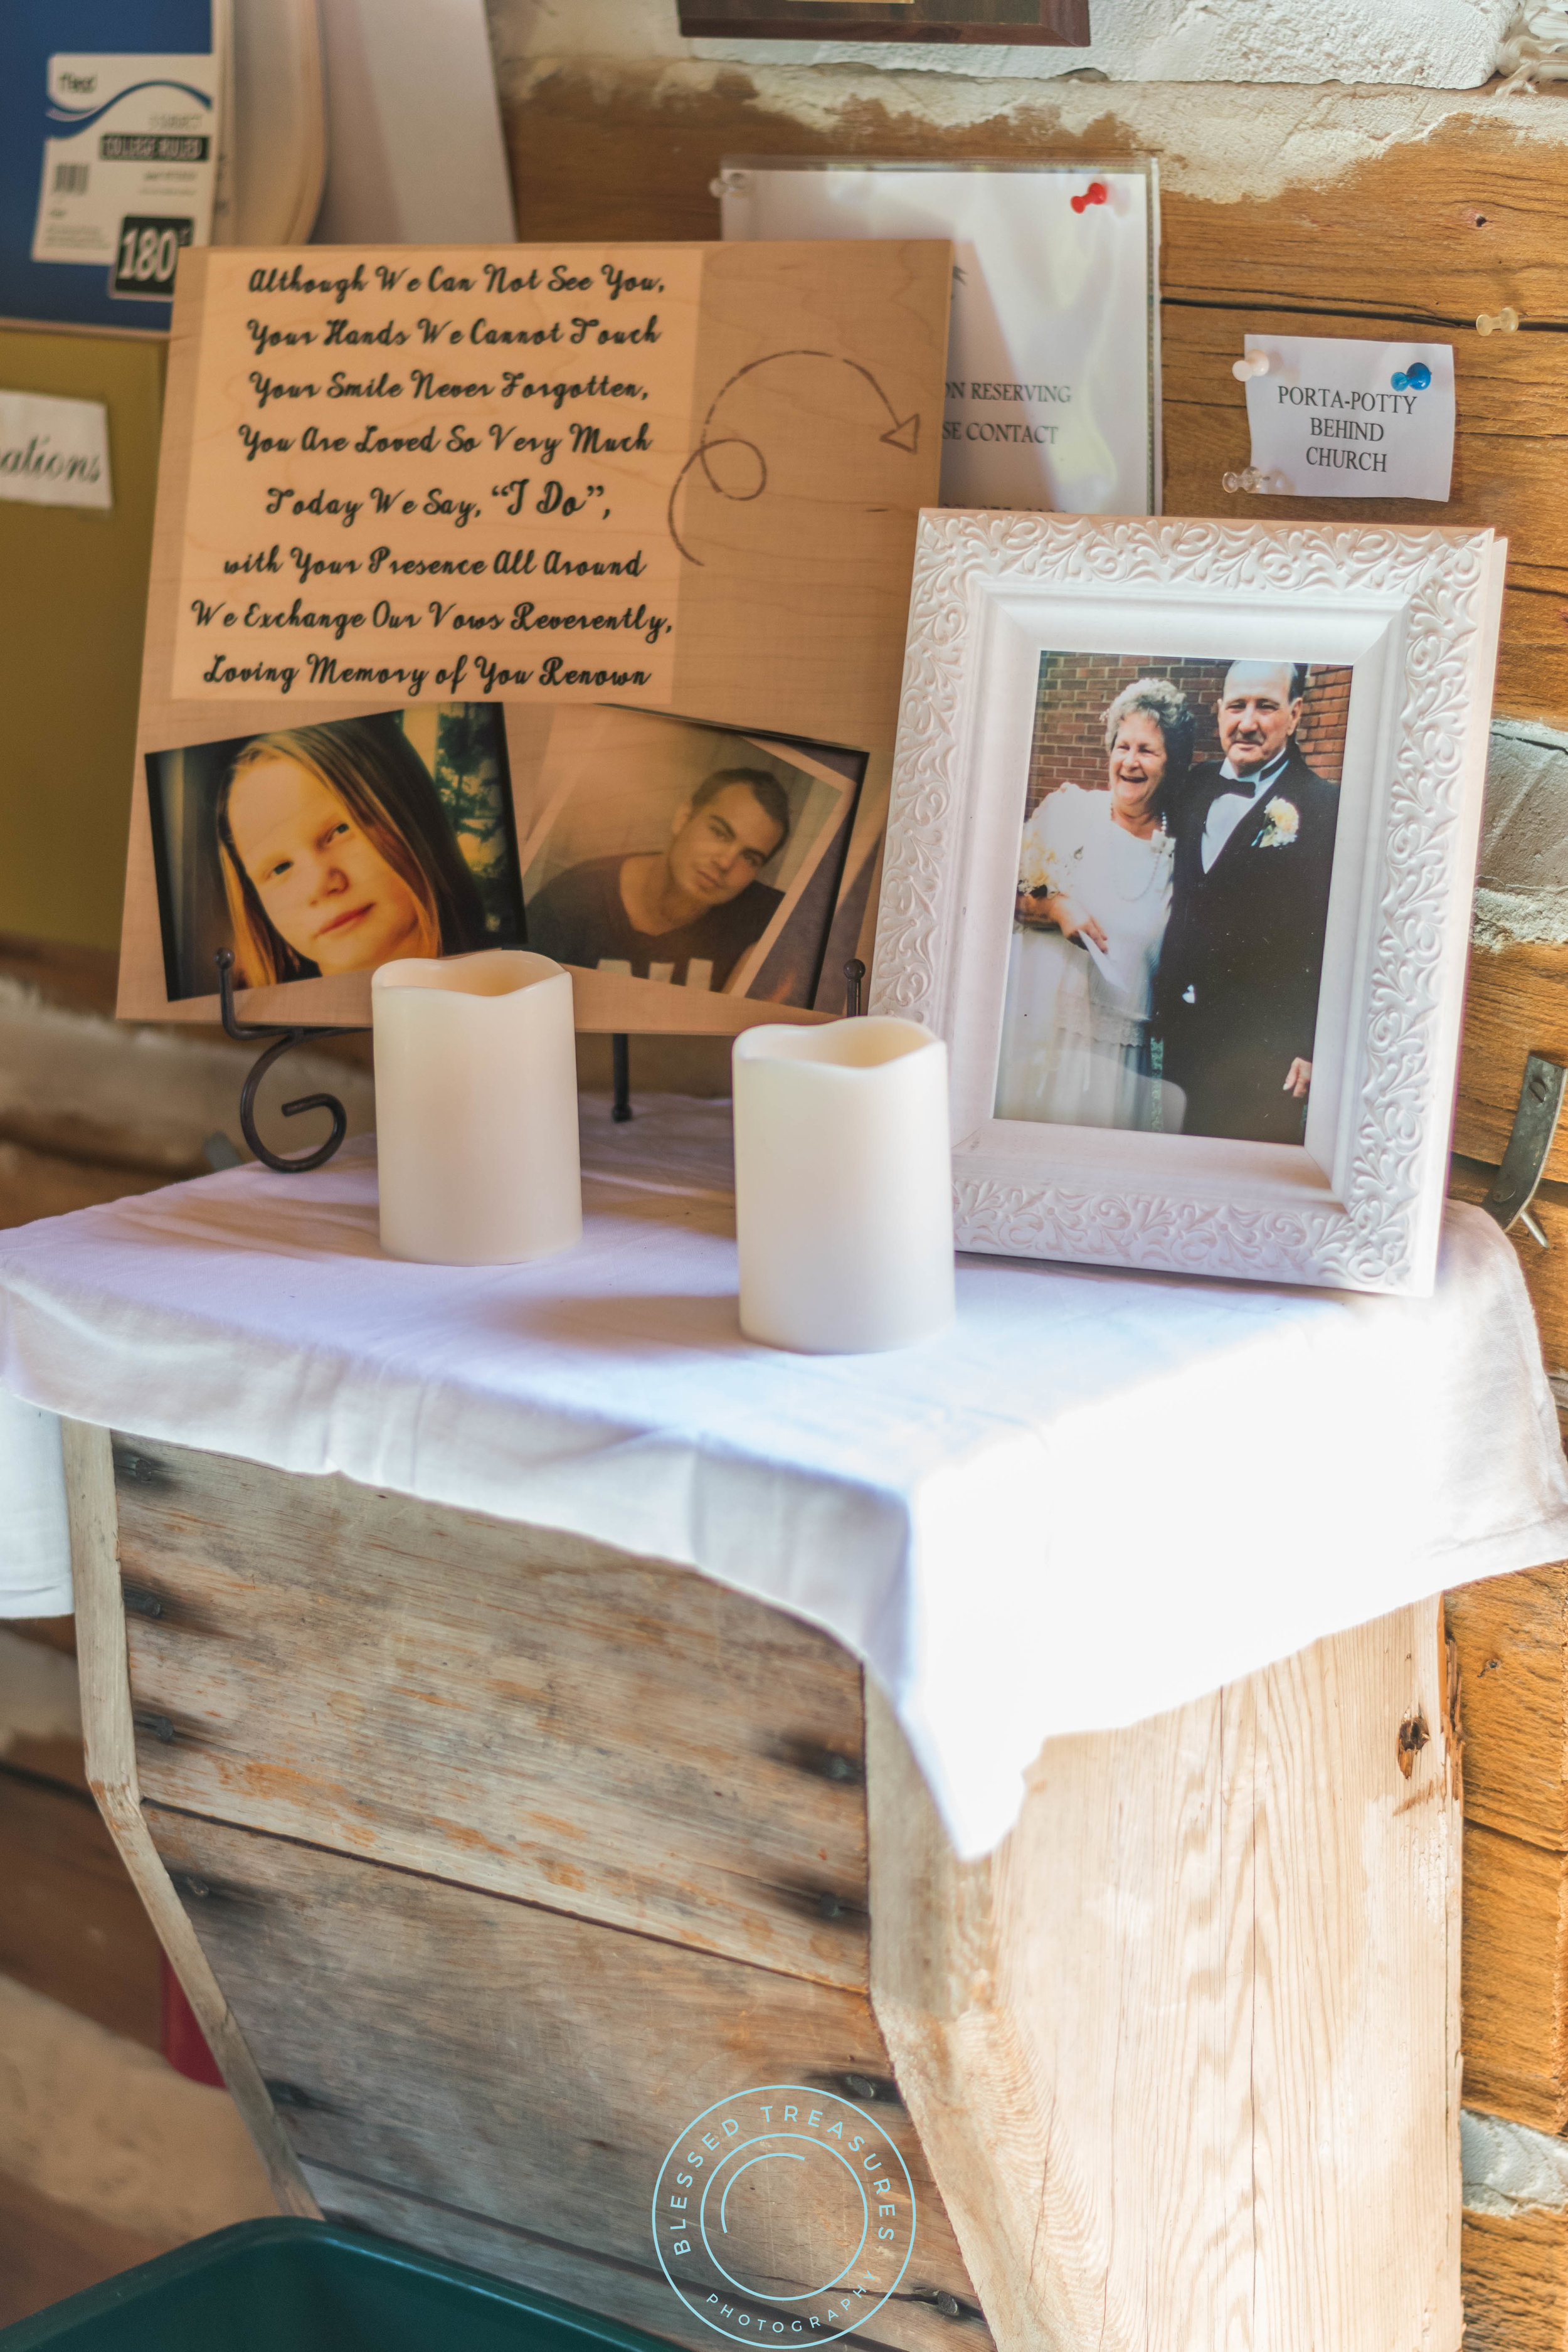 Mansfield township pioneer church crystal falls michigan memorial poem pictures candles rustic wedding decorations